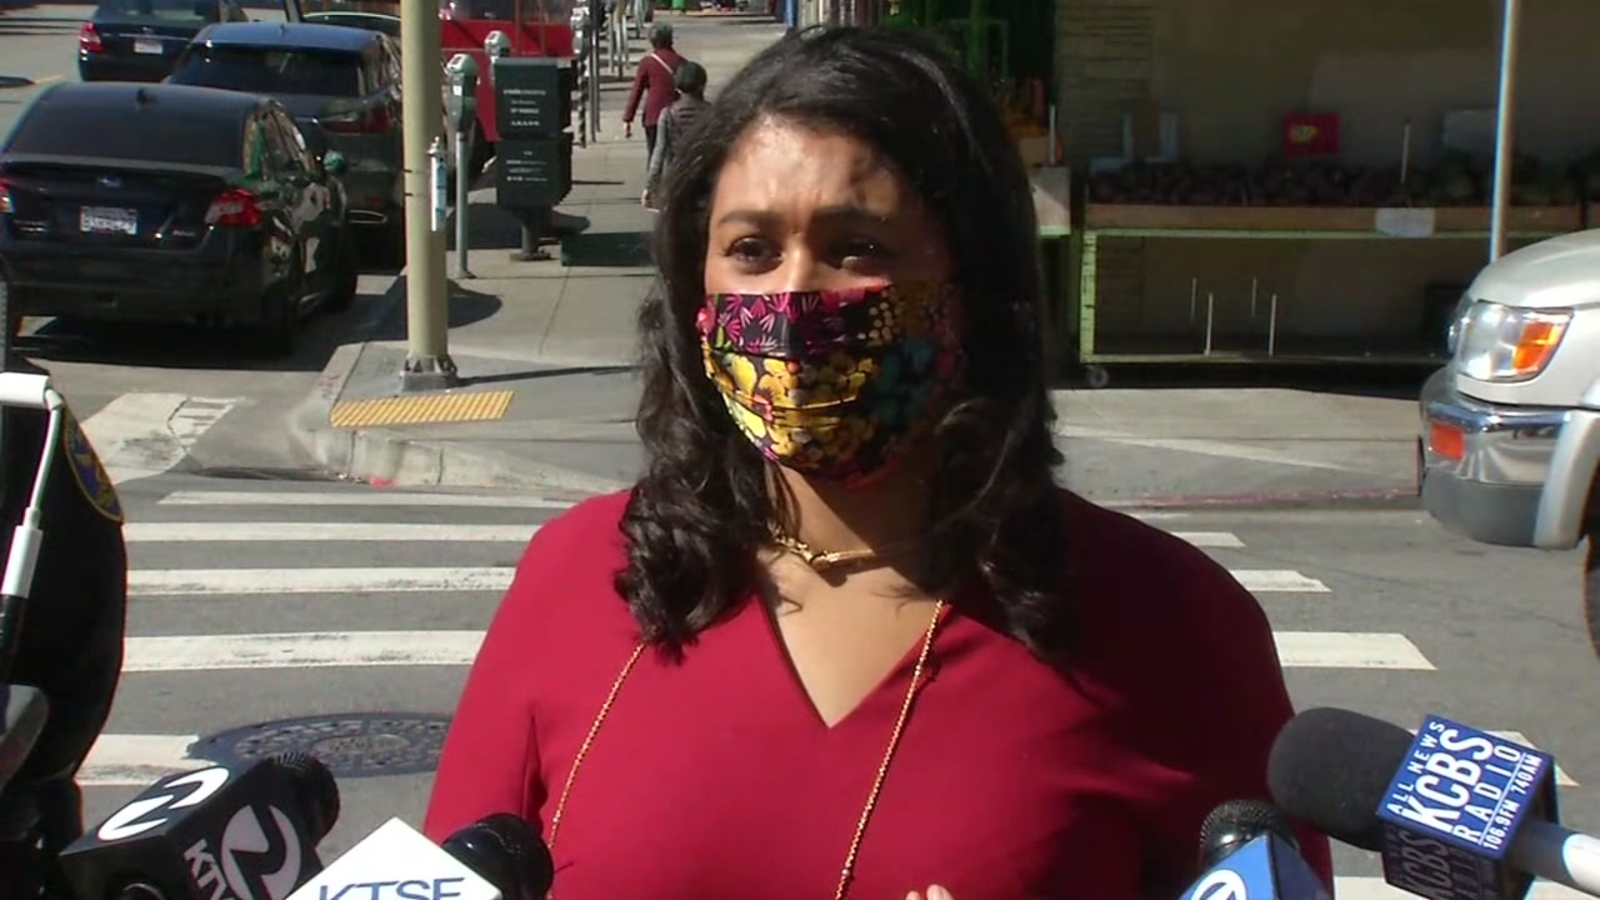 San Francisco Mayor London Breed tells criminals to stay away as city develops new plans for handling repeat offenders